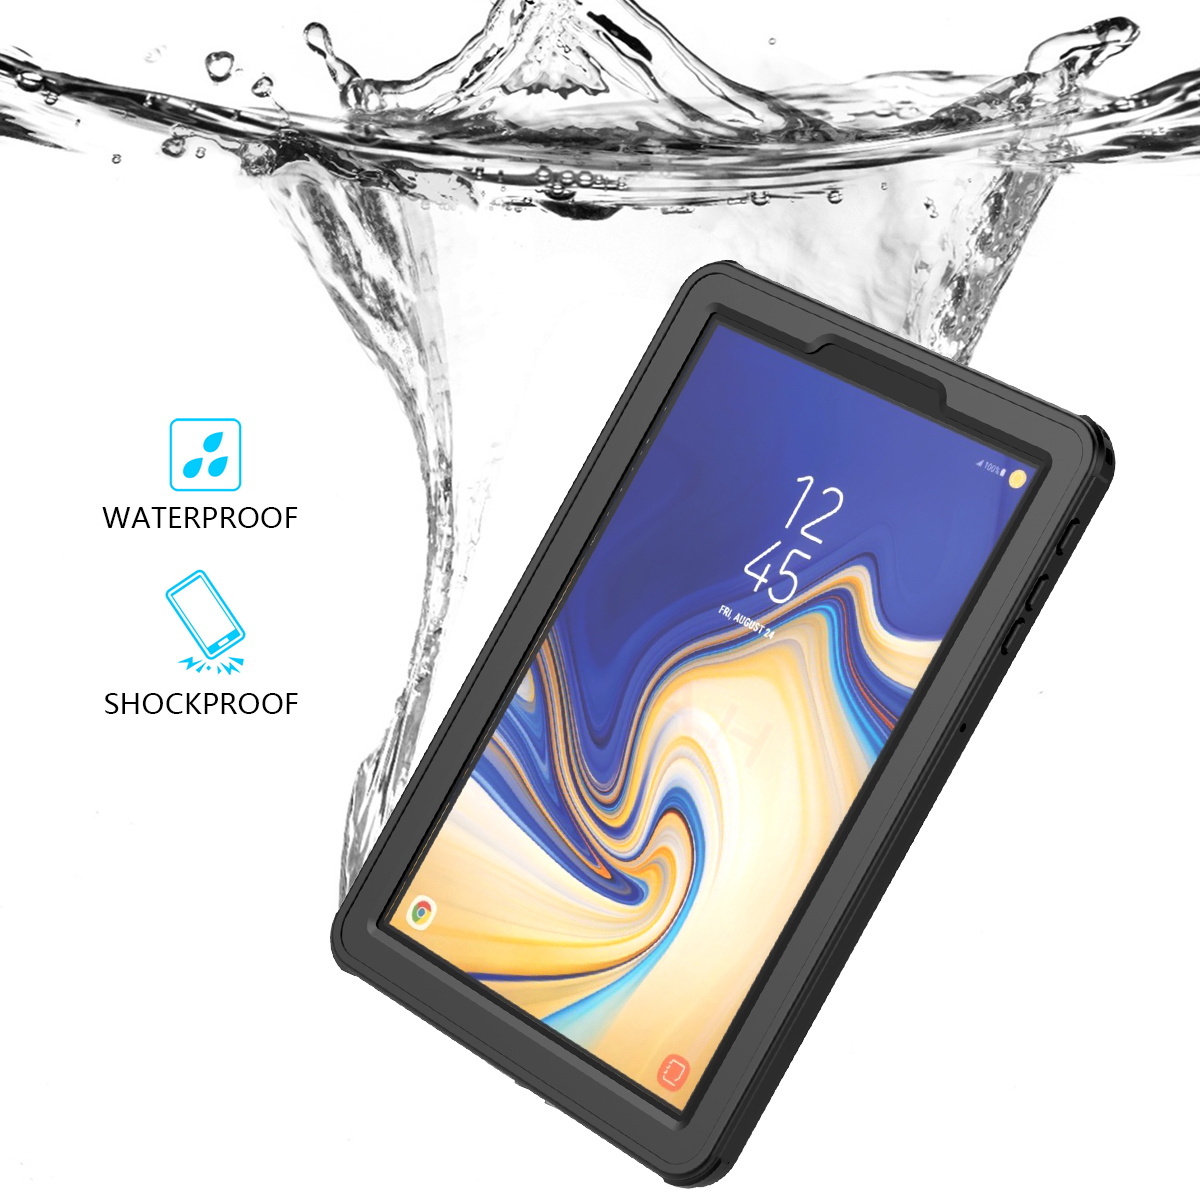 For Samsung Galaxy Tab S4 10.5 inch T830 T835 Waterproof Tablet Case Shockproof Dust Proof Protective Cover For Tab S3/Tab A6For Samsung Galaxy Tab S4 10.5 inch T830 T835 Waterproof Tablet Case Shockproof Dust Proof Protective Cover For Tab S3/Tab A6